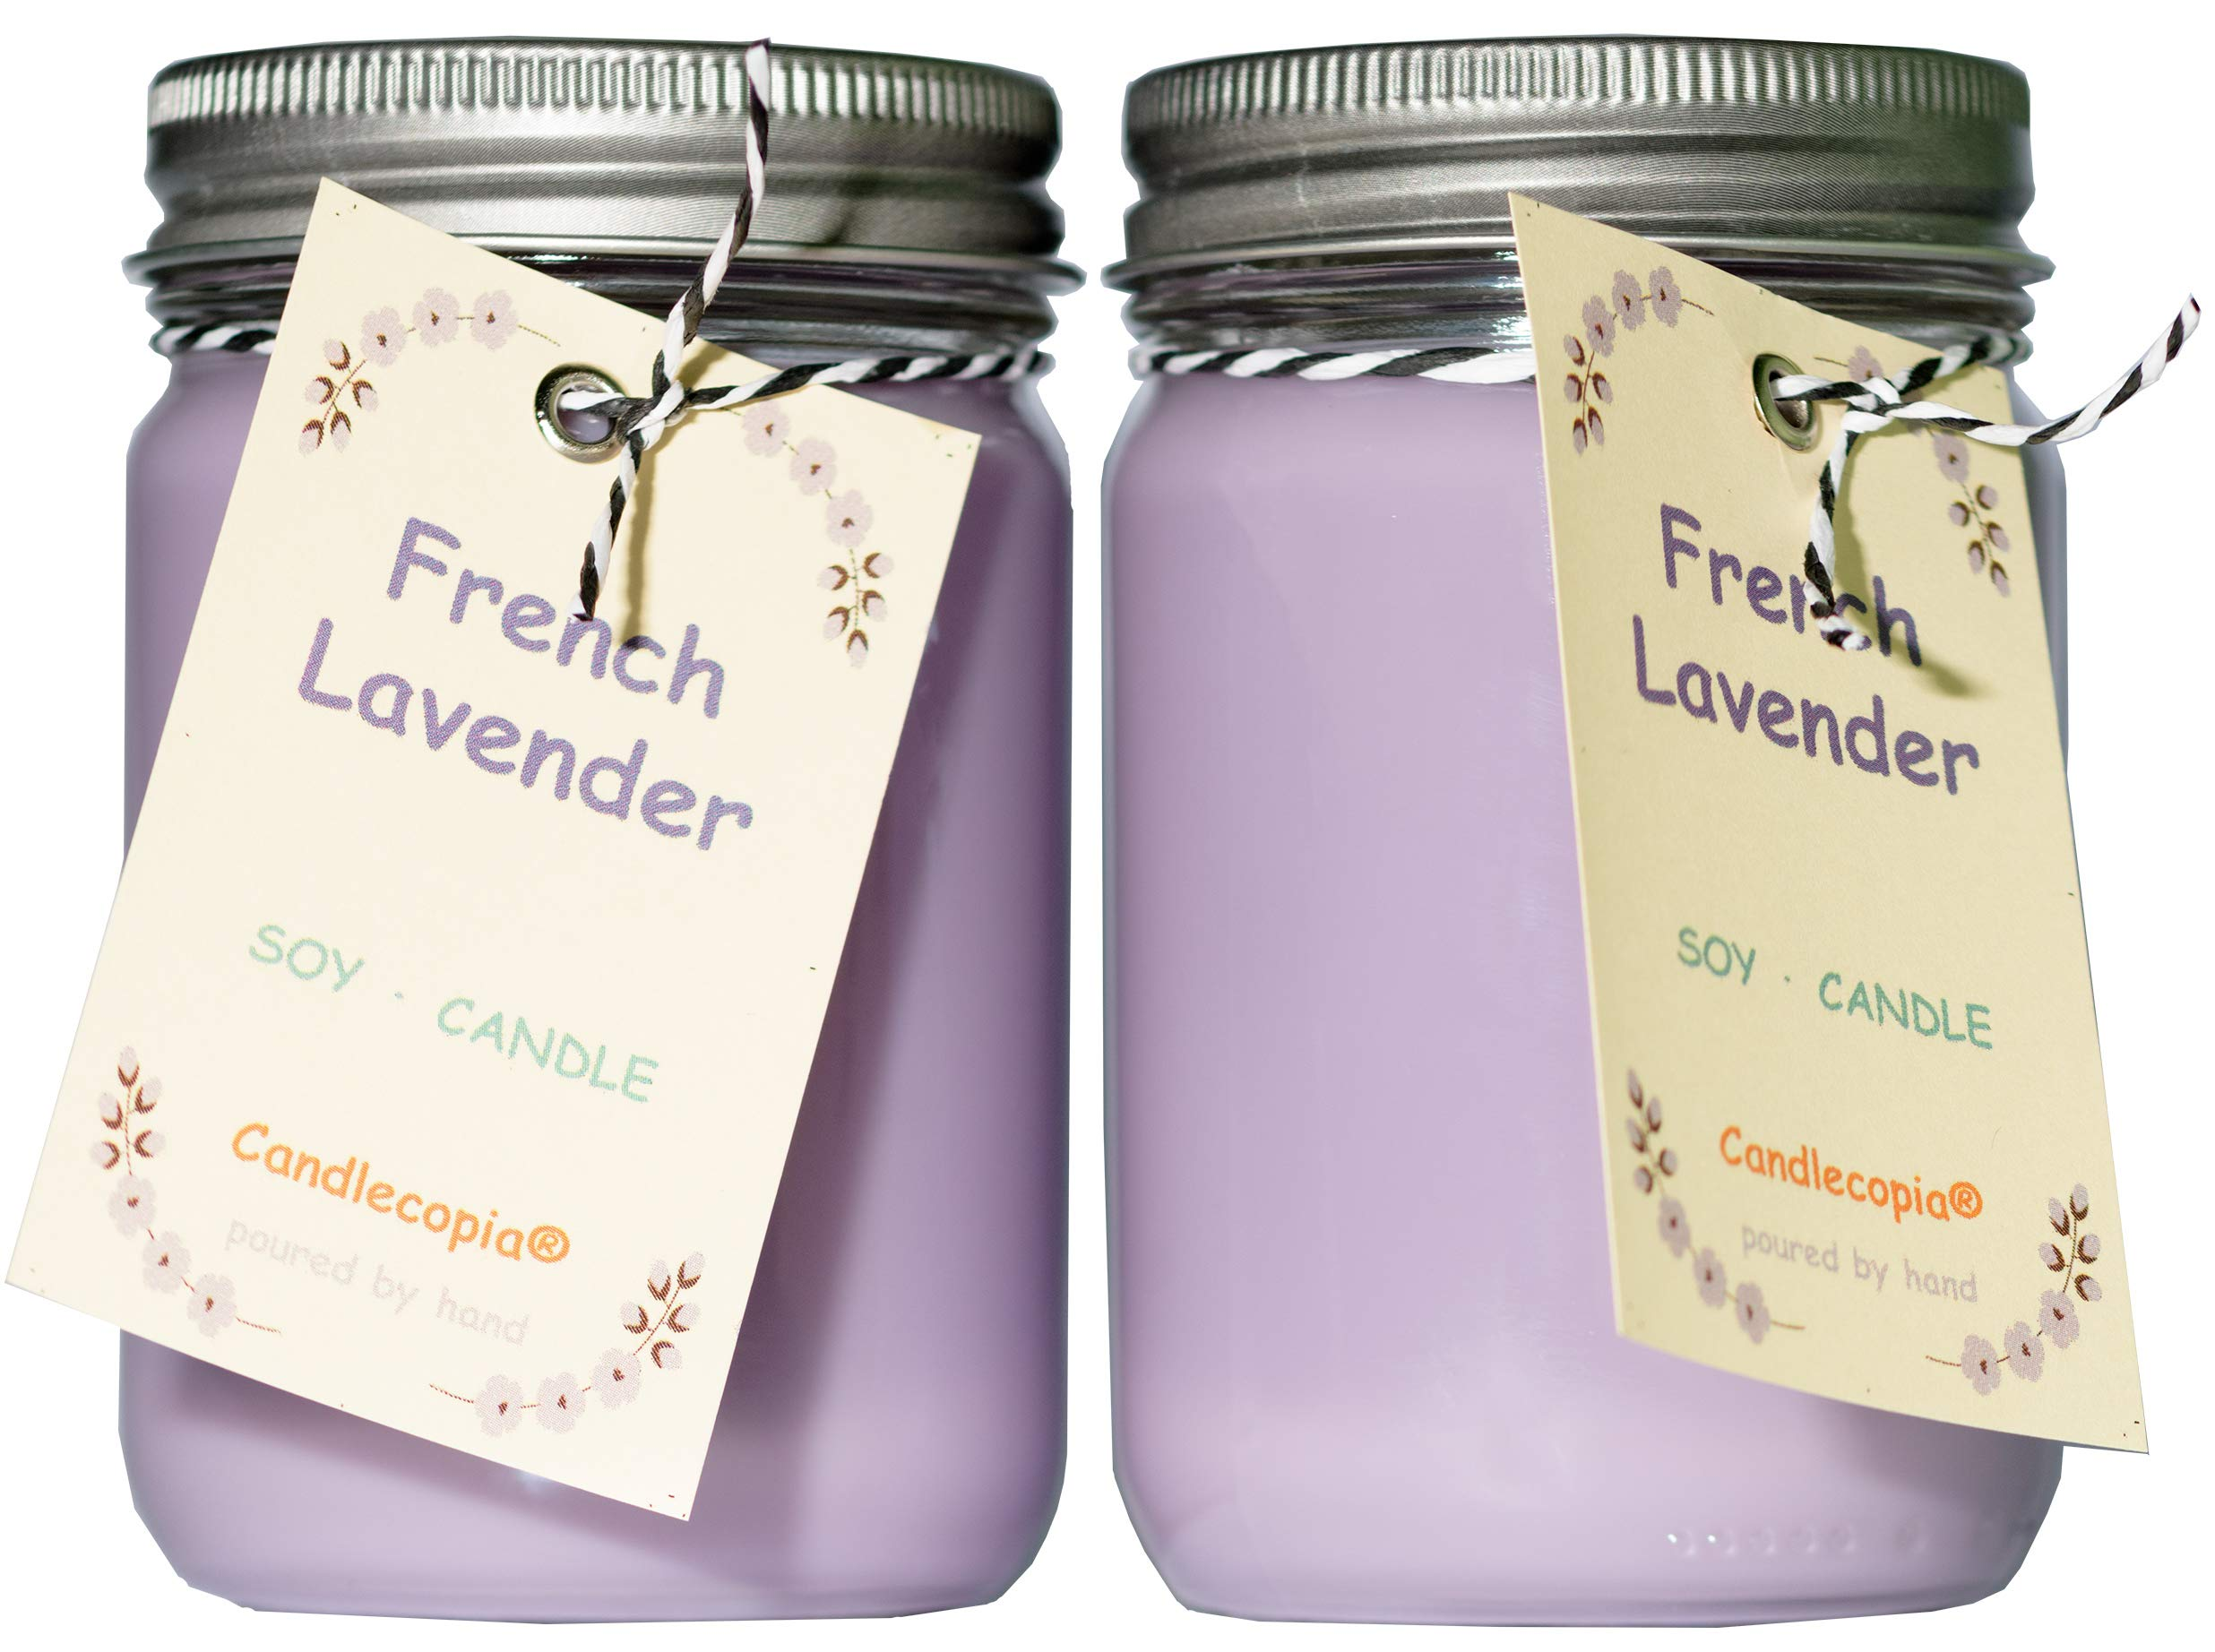 Candlecopia French Lavender Strongly Scented Hand Poured Premium Soy Candles, 12 Ounce Pewter Lid Canning Jar x 2-Pack